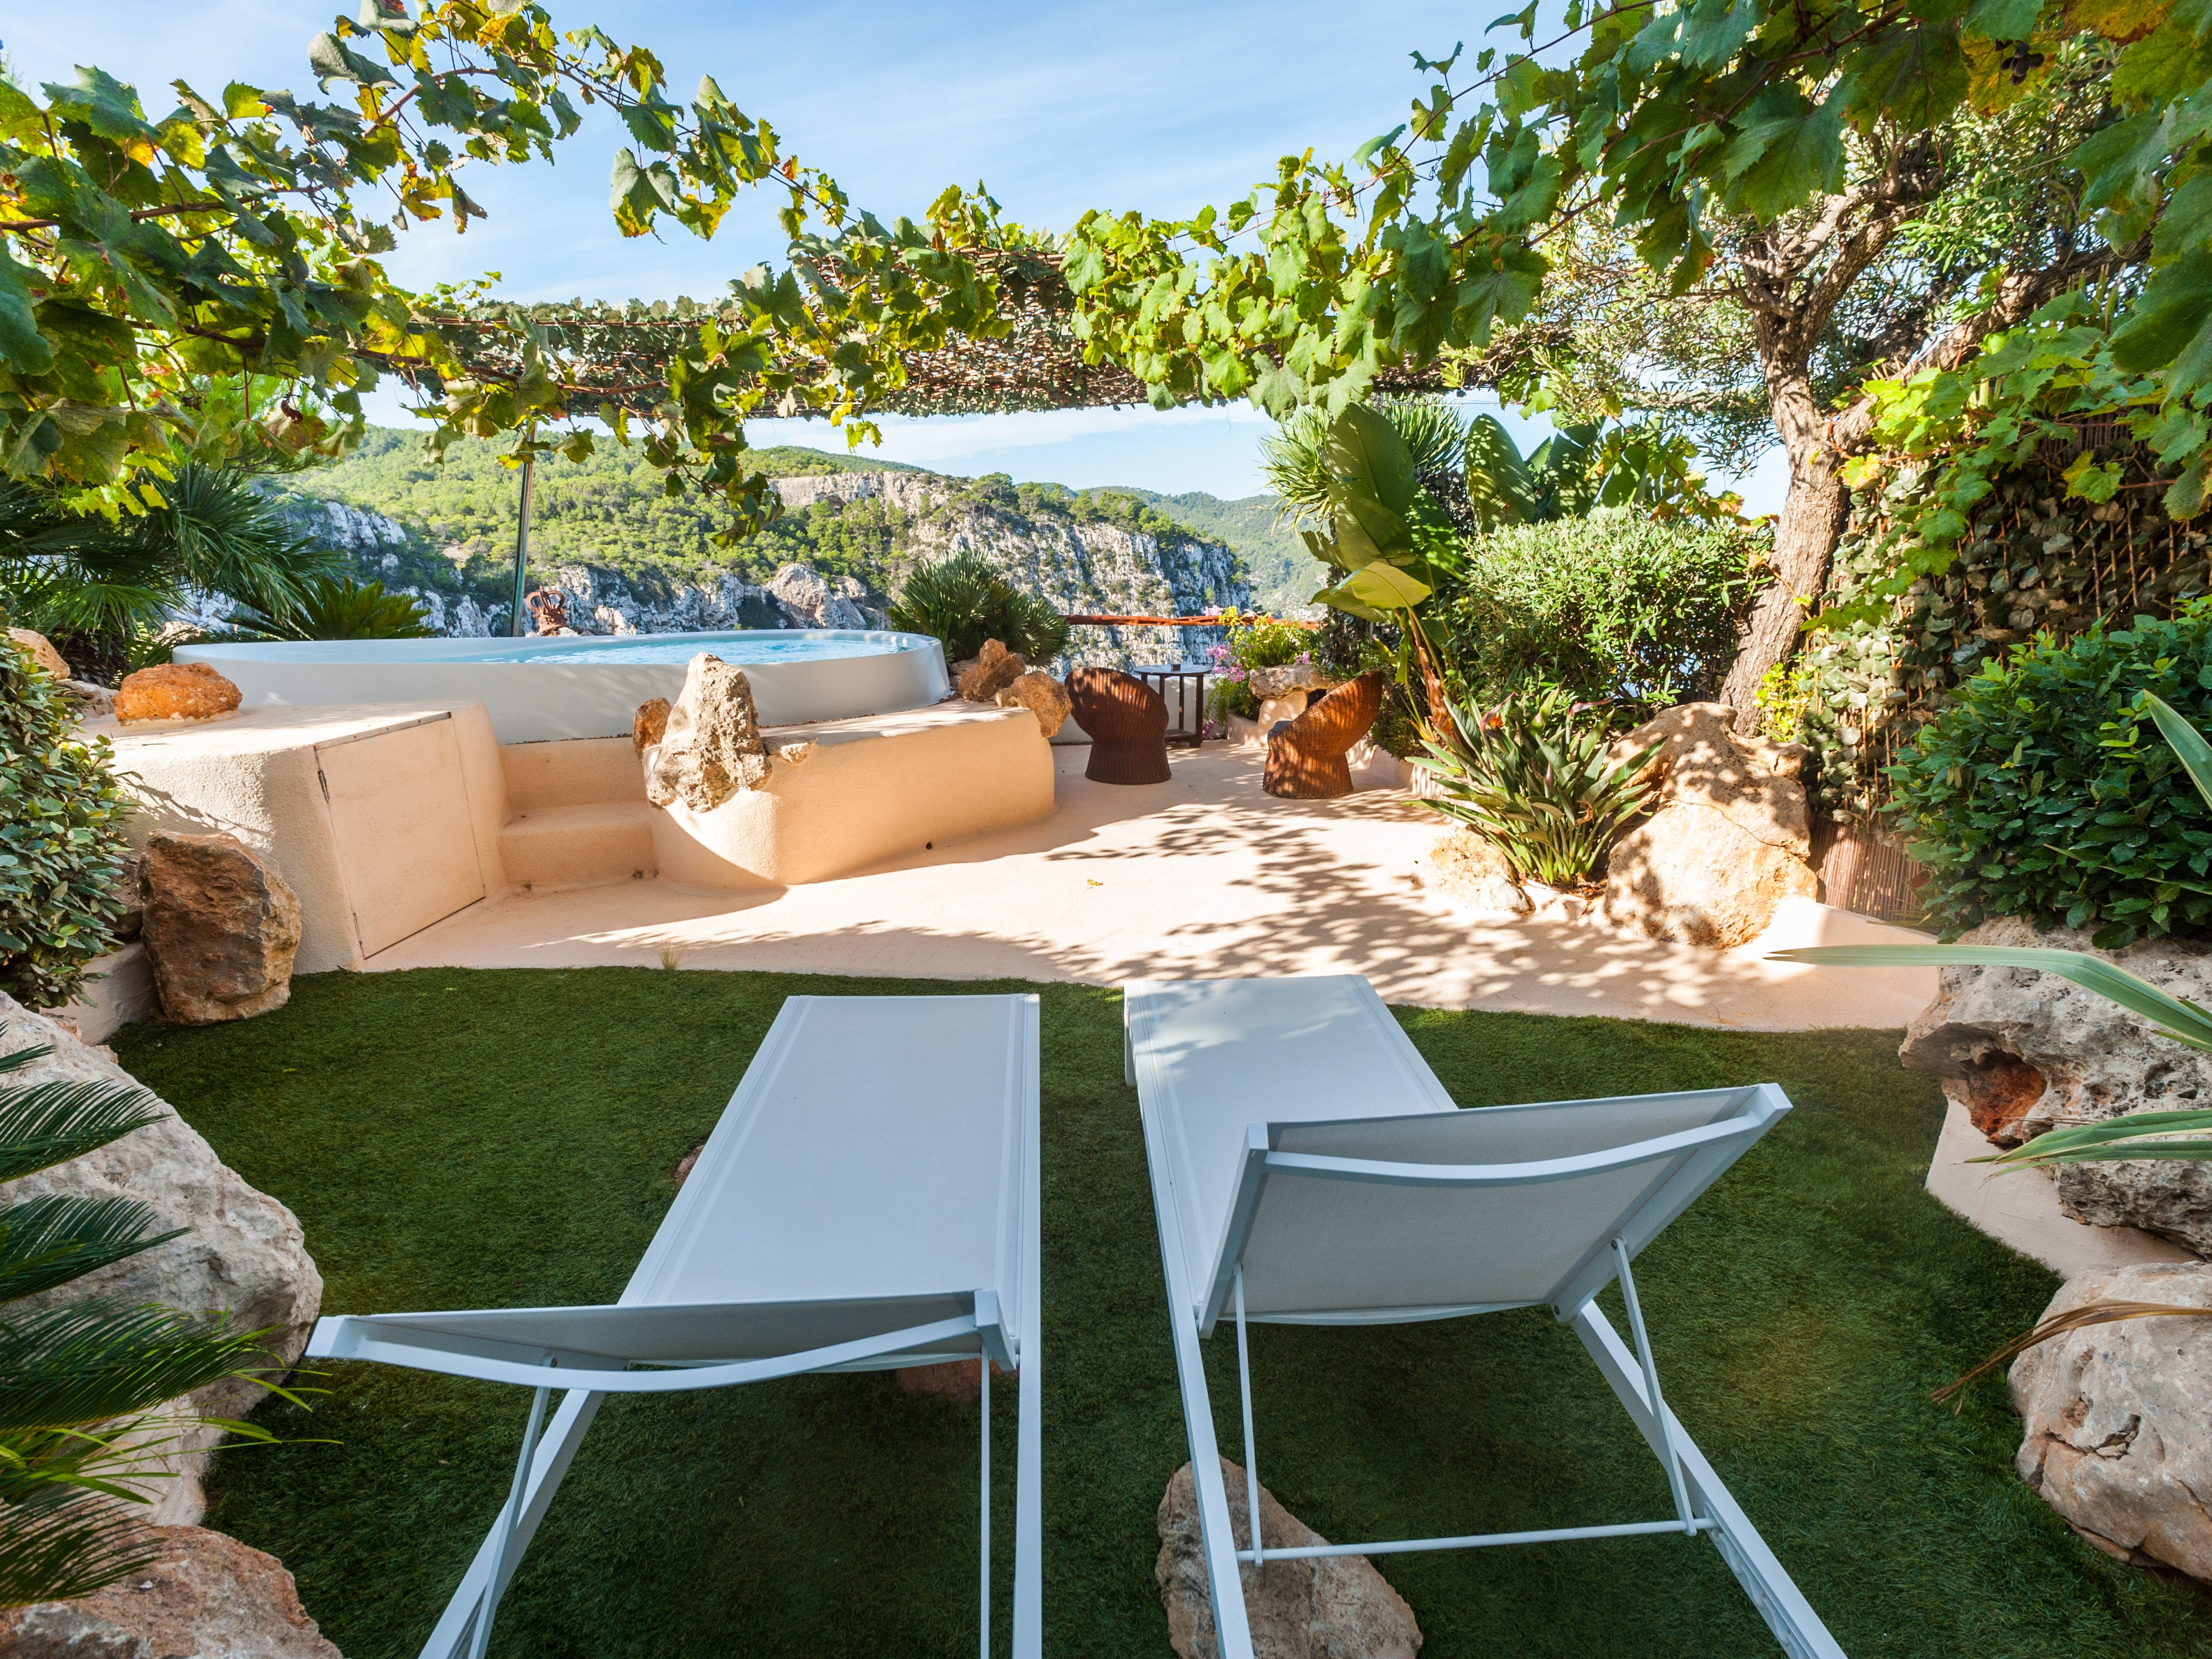 Hacienda Na Xamena, Ibiza: This secluded boutique offers the most spectacular Mediterranean views on Ibiza. Located amid pine tree forests and dramatic rocky cliffs that drop sharply into the sea, the property focuses on quiet luxury and stunning ocean views. All 77 rooms and suites feature furnished balconies or terraces and floor-to-ceiling windows that bring the outdoors in. Eden Rooms add lush, pergola-shaded garden terraces with loungers, wicker chairs and plunge pools.